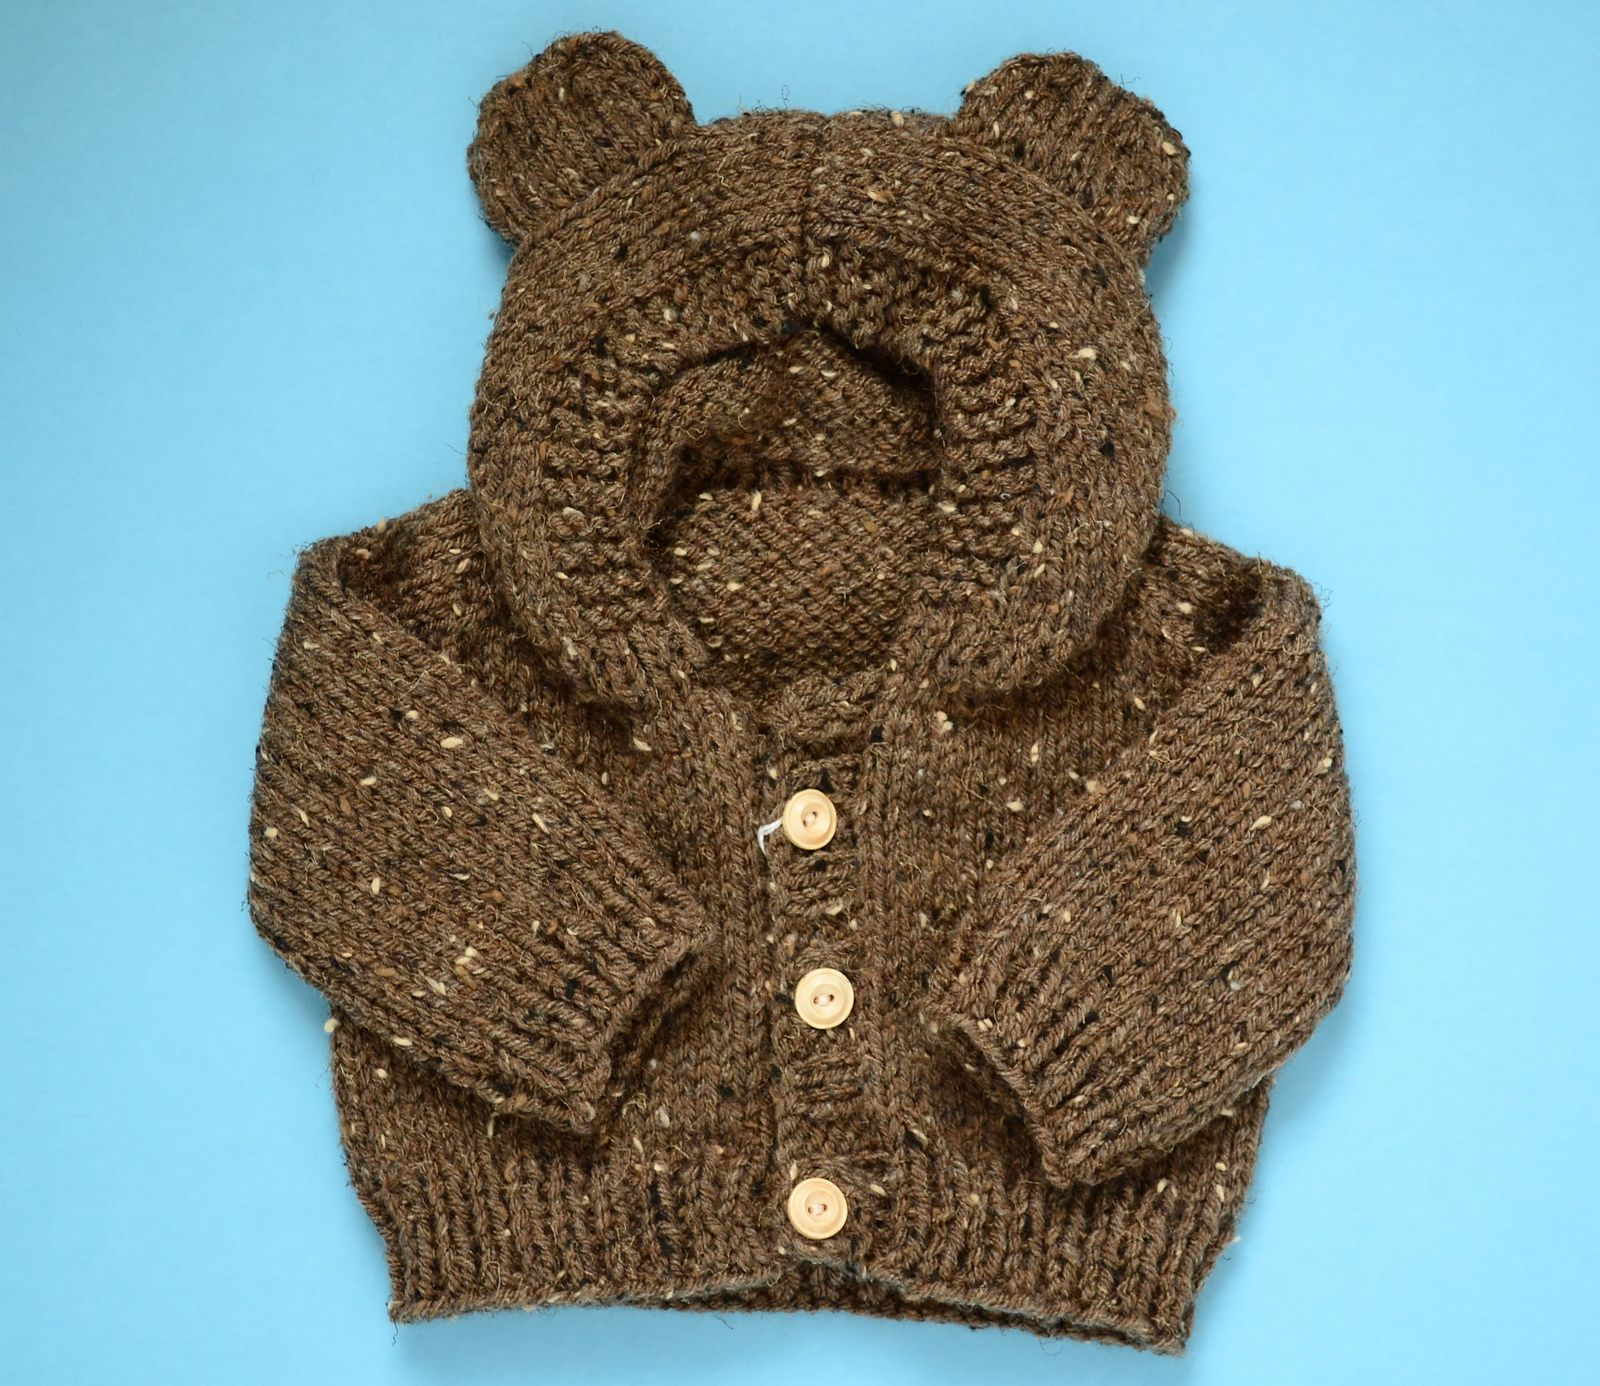 Ravelry: Baby Sweater Buffet by Allyson Dykhuizen | crafts ...